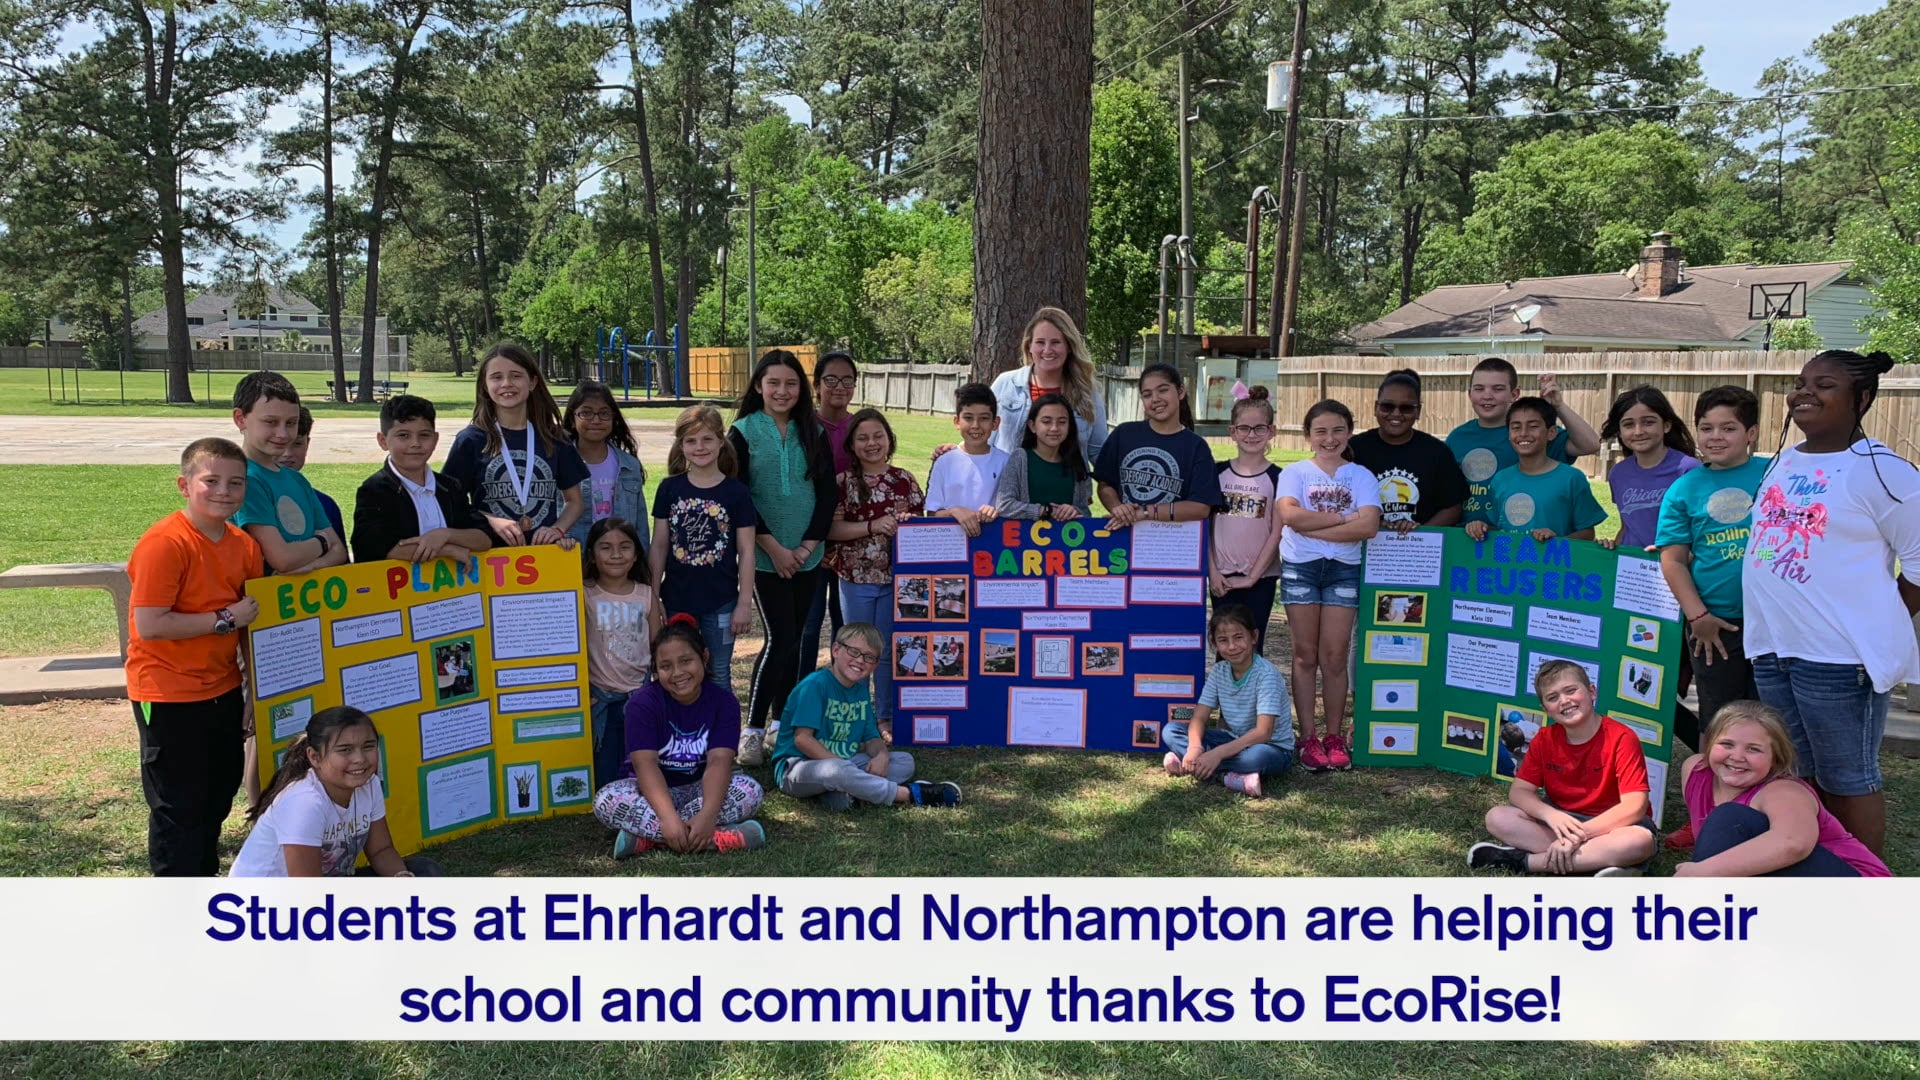 EcoRise Grants Awarded to 2 Schools